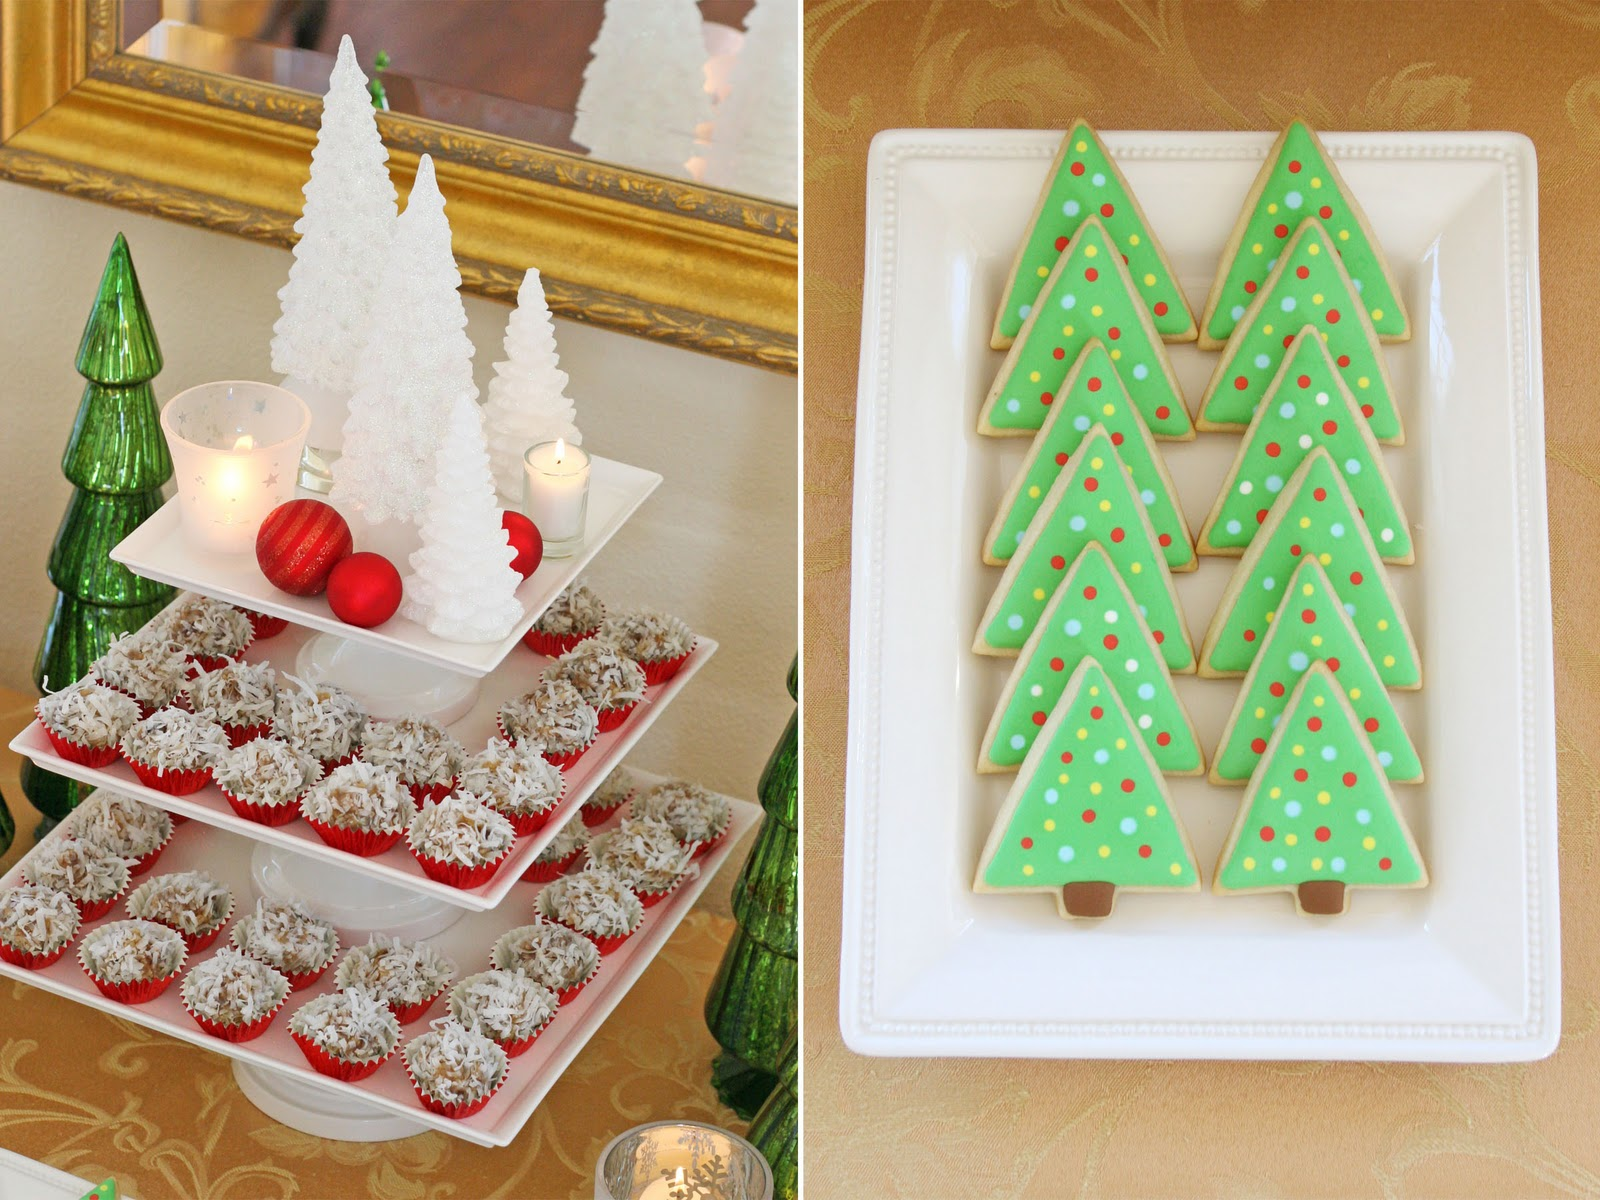 classic holiday dessert table glorious treats - Christmas Dessert Decorations